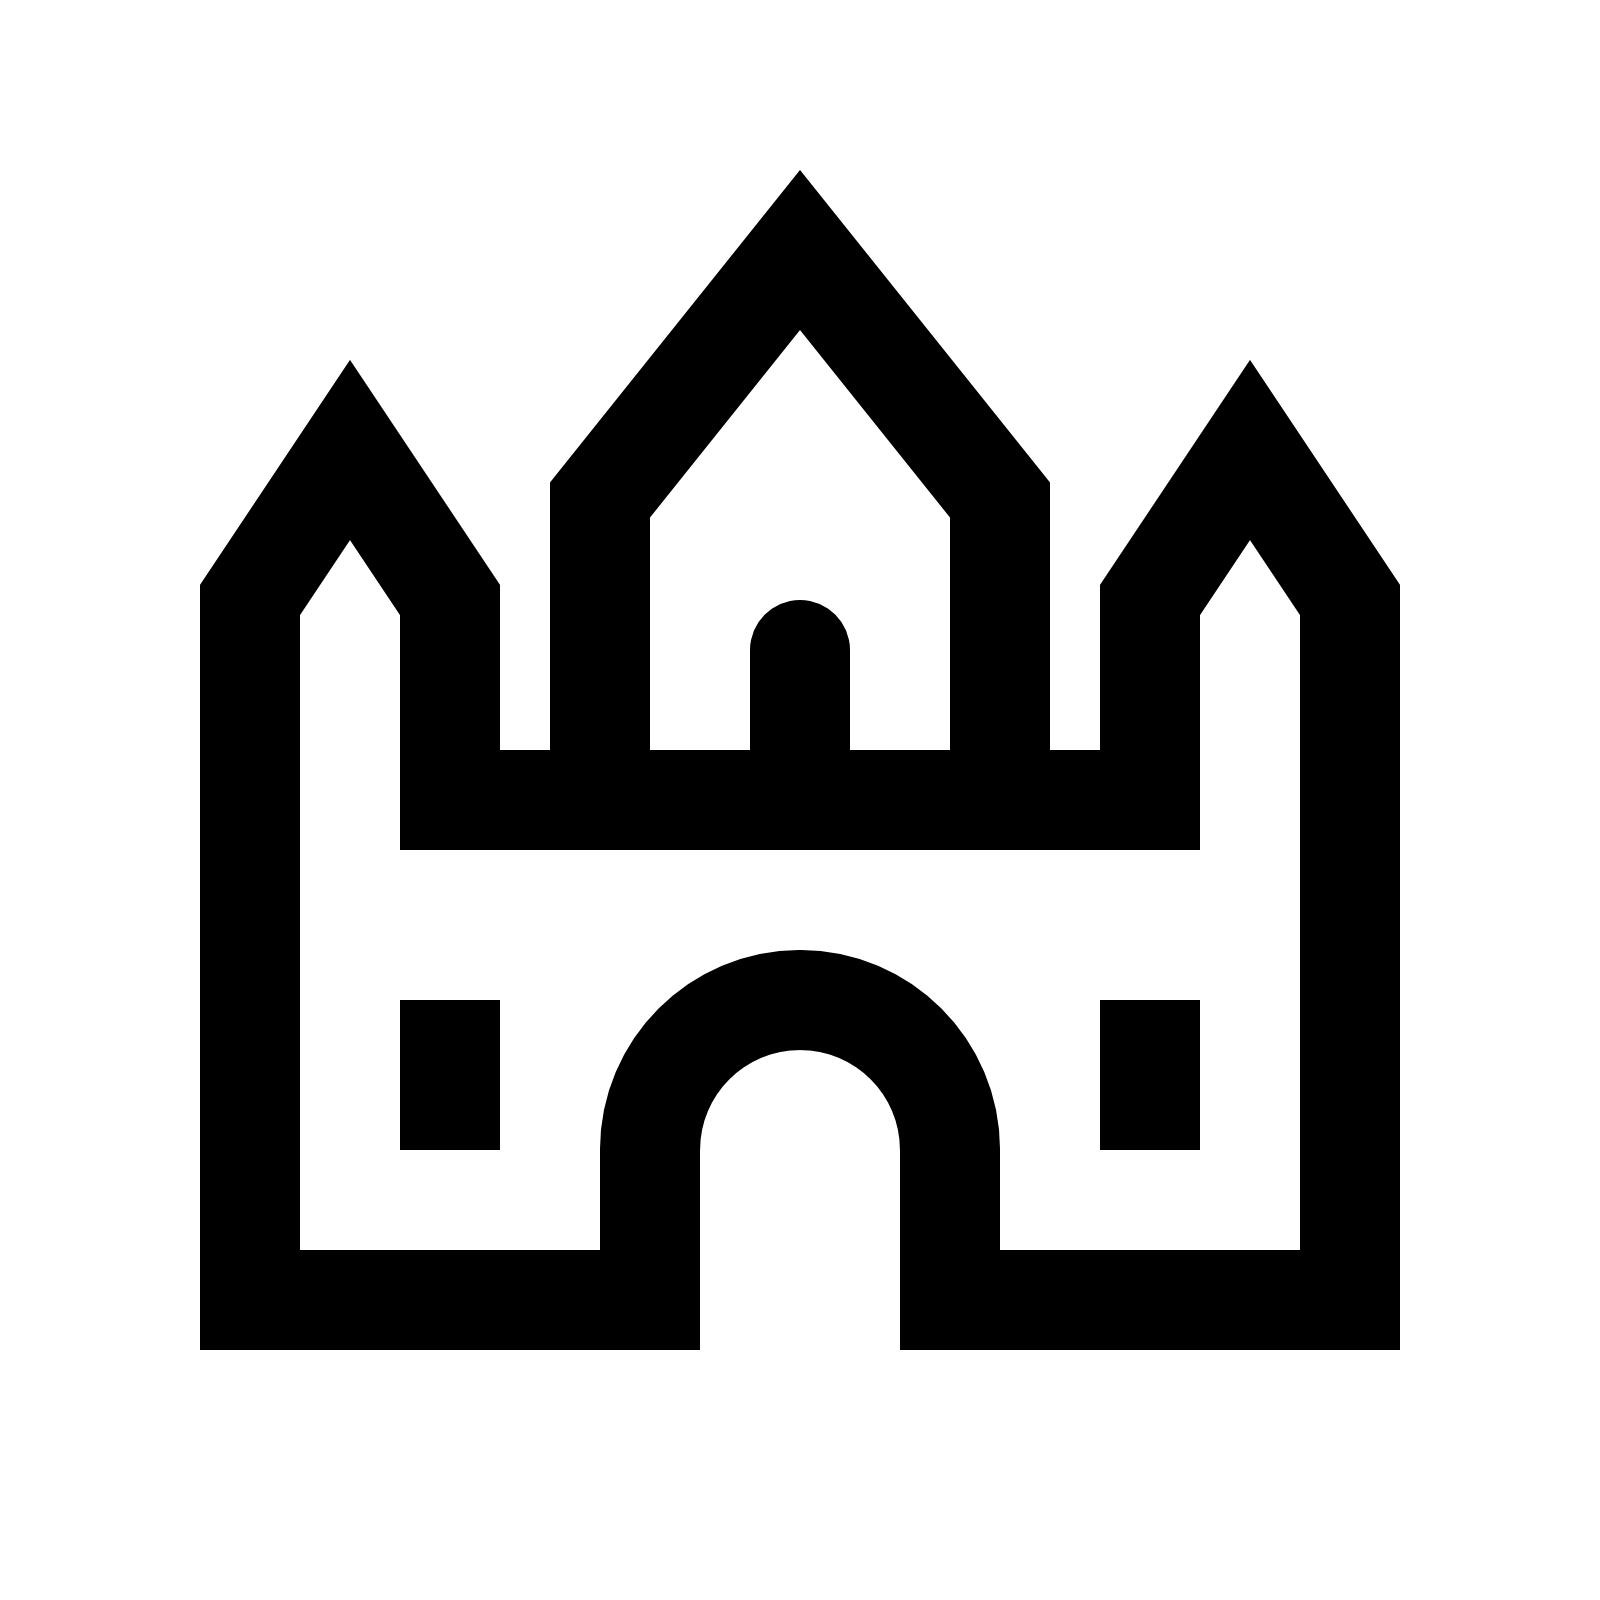 Transparent castle palace. Png images free download